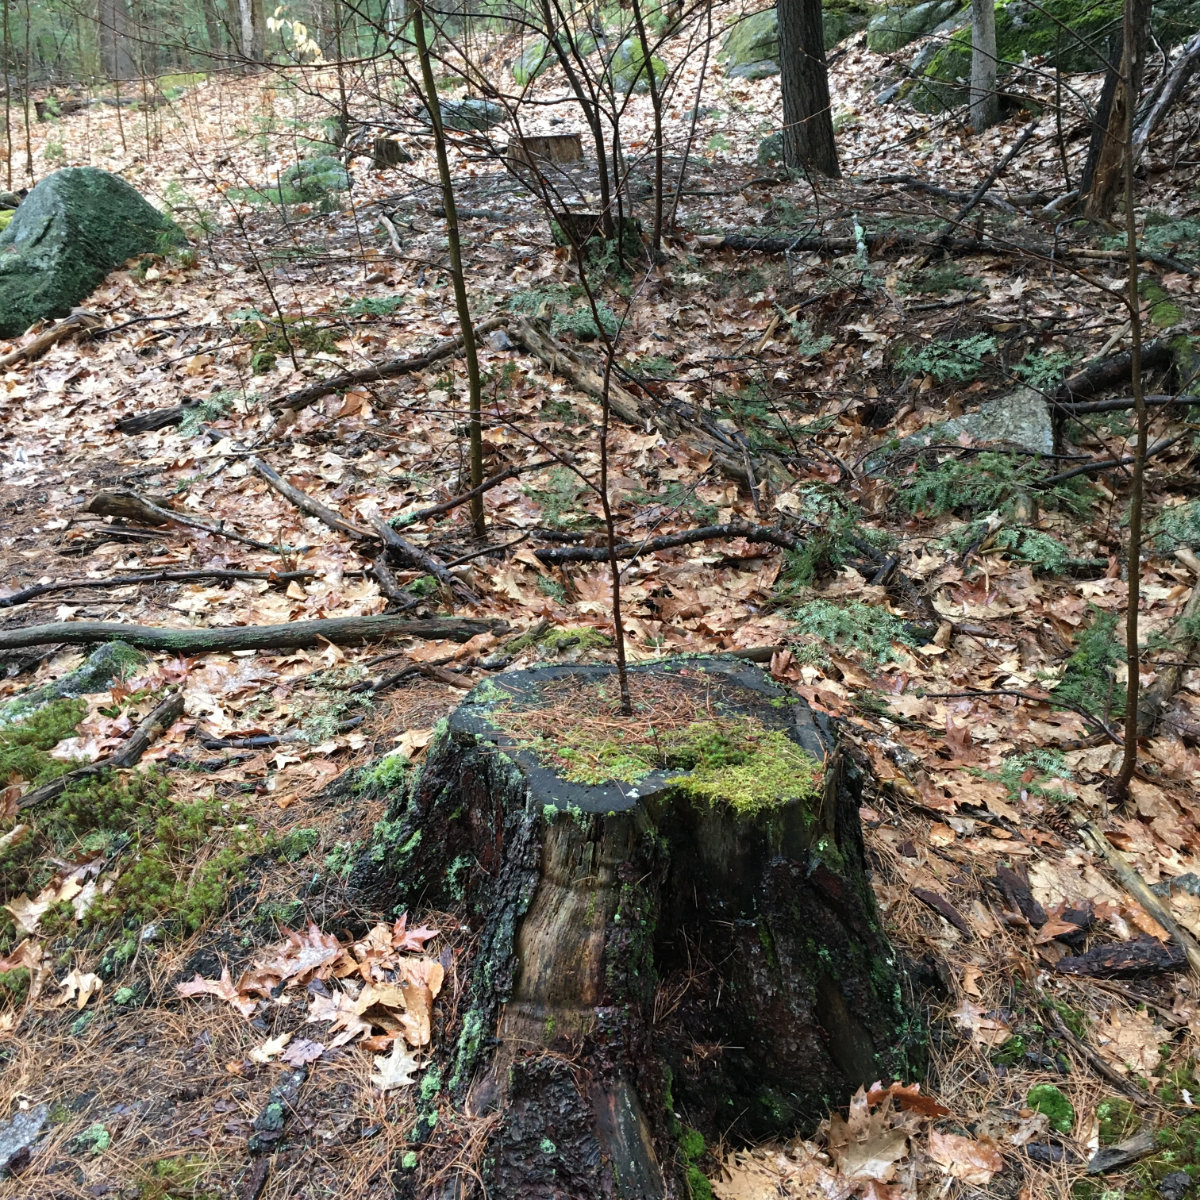 2-Tree-in-a-Stump-Fox-Research-20200409